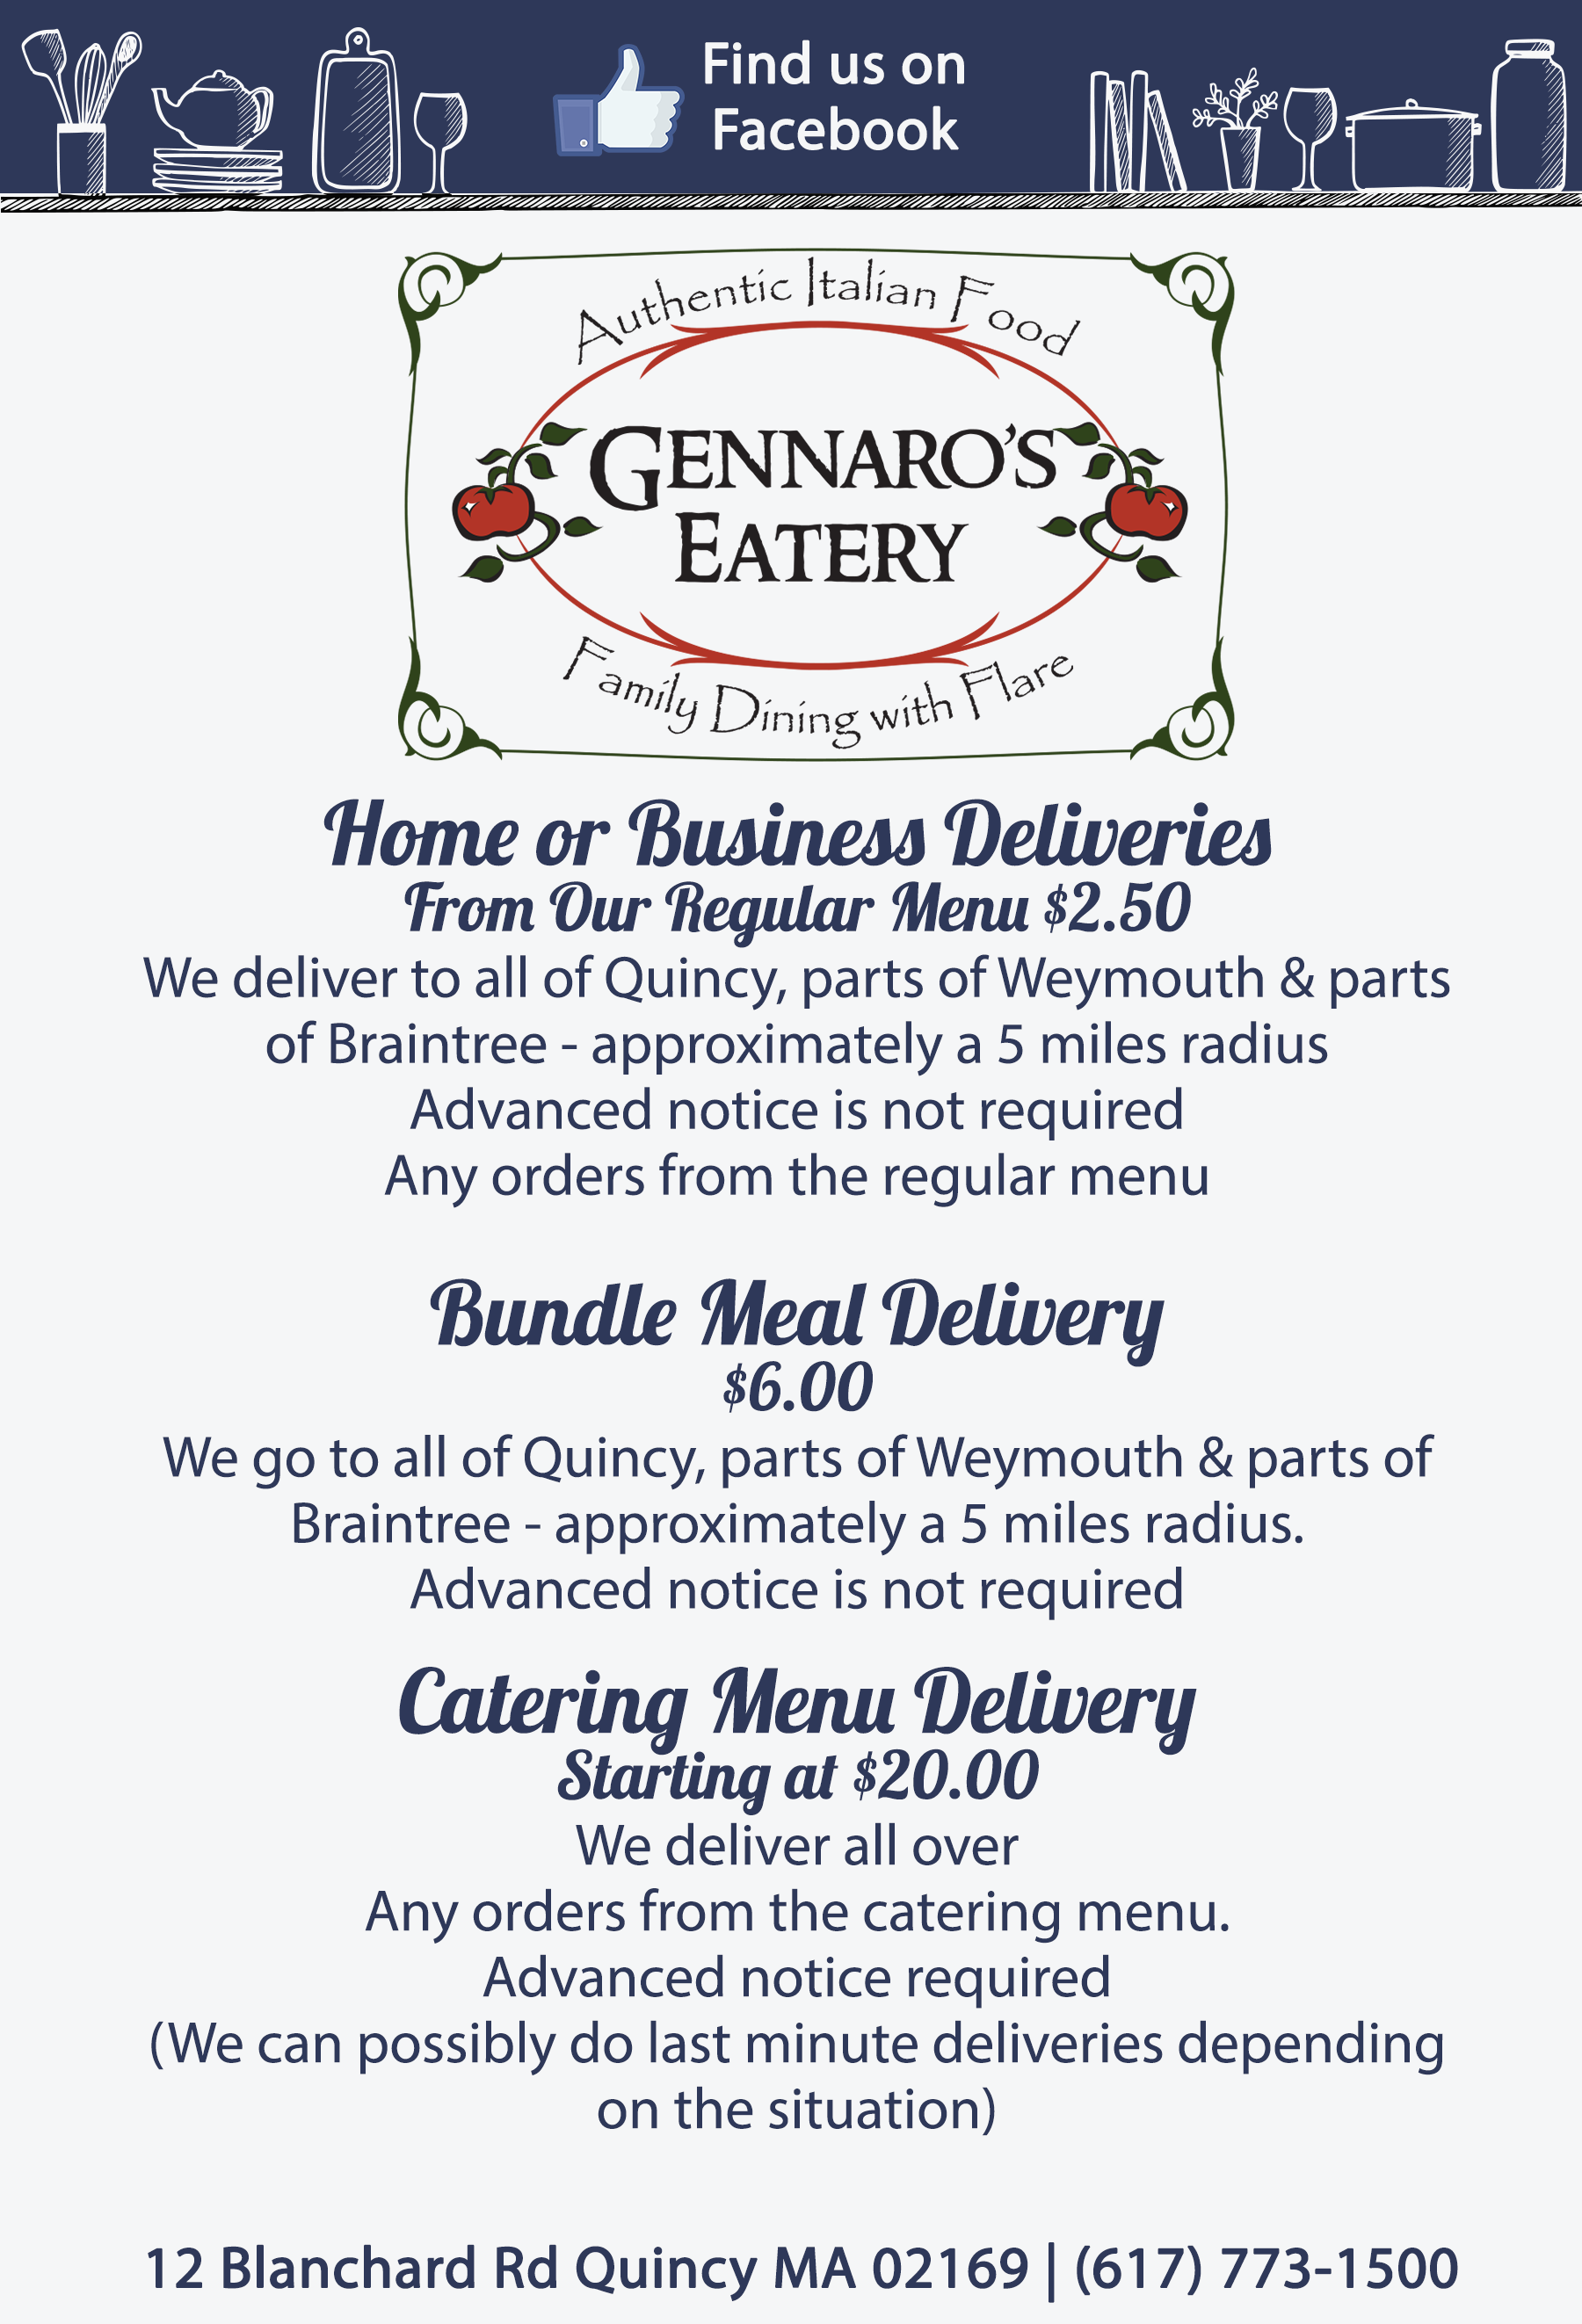 Find us on Facebook. Gennaro's Eatery. Authentic Italian Food. Family Dining with Flare. Home or Business Deliveries From Our Regular Menu $2.50. We deliver to all of Quincy, parts of Weymouth & parts of Braintree - approximately a 5 miles radius. Advanced notice is not required. Any orders from the regular menu. Bundle Meal Delivery - $6.00. We go to all of Quincy, parts of Weymouth & parts of Braintree - approximately a 5 miles radius. Advanced notice is not required. Catering Menu Delivery - Starting at $20.00. We deliver all over. Any orders from the catering menu. Advanced notice required. (We can possibly do last minute deliveries depending on the situation.) 12 Blanchard Rd Quincy MA 02169 | (617) 773-1500